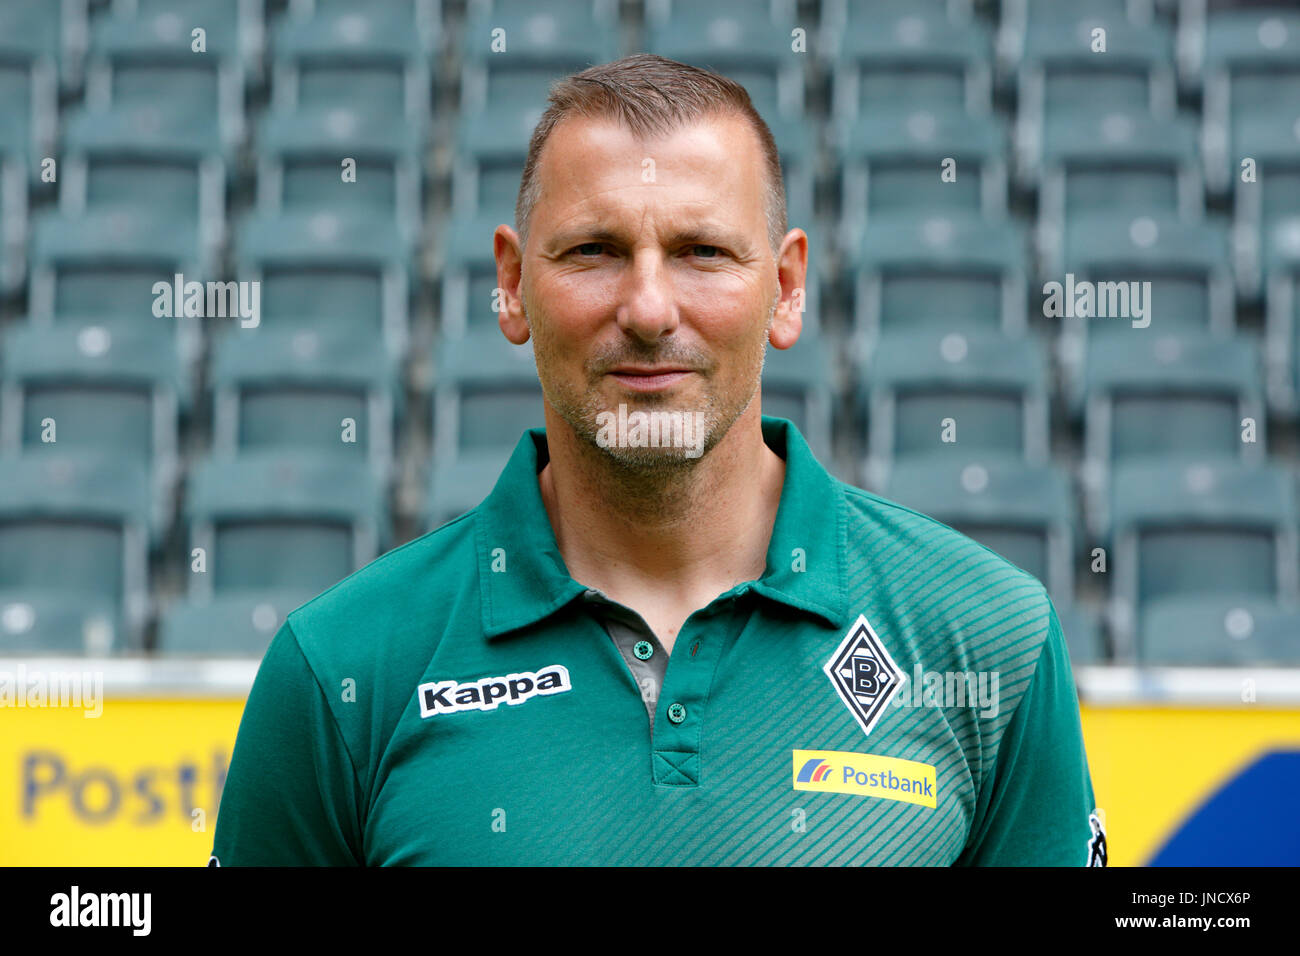 football,Bundesliga,2017/2018,Borussia Moenchengladbach,press photo shooting,portrait,physiotherapist Dirk Mueller Stock Photo